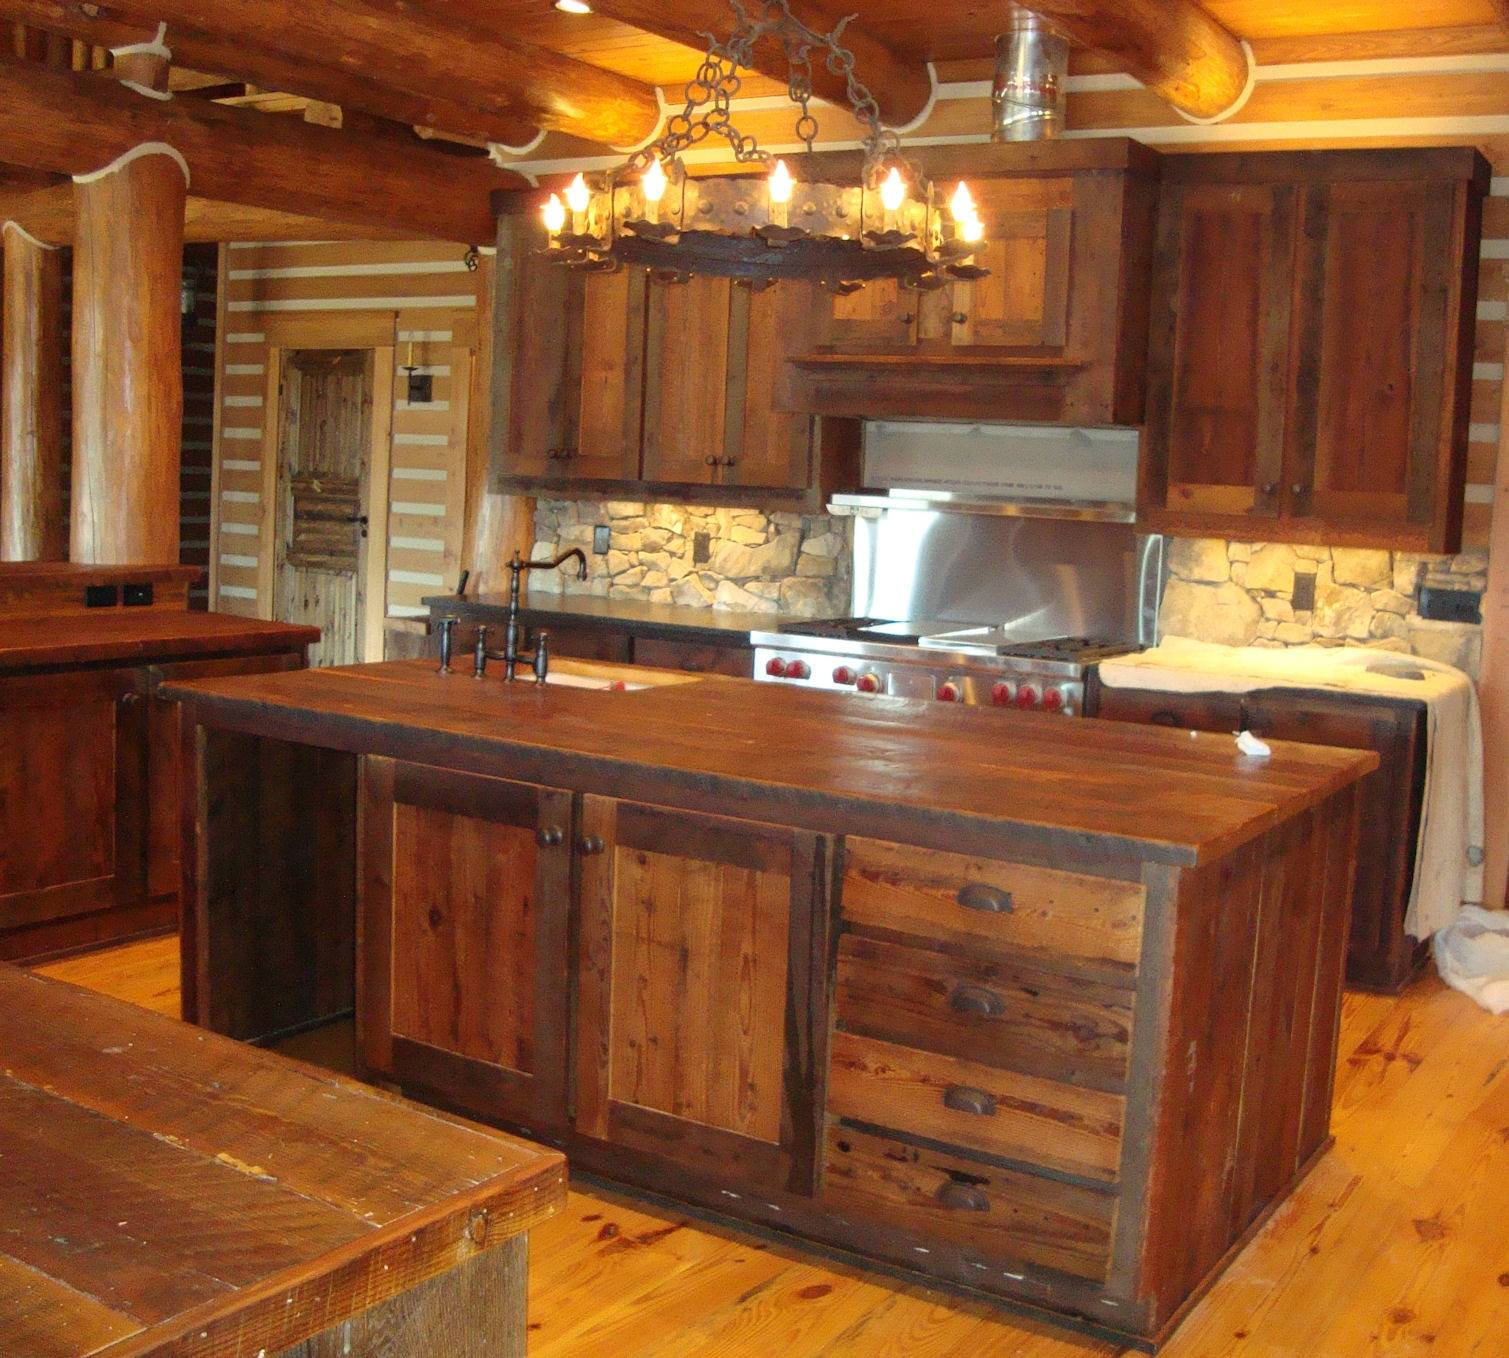 Charming Rustic Kitchen Ideas And Inspirations: Interior Rustic Kitchens Charming Design Ideas